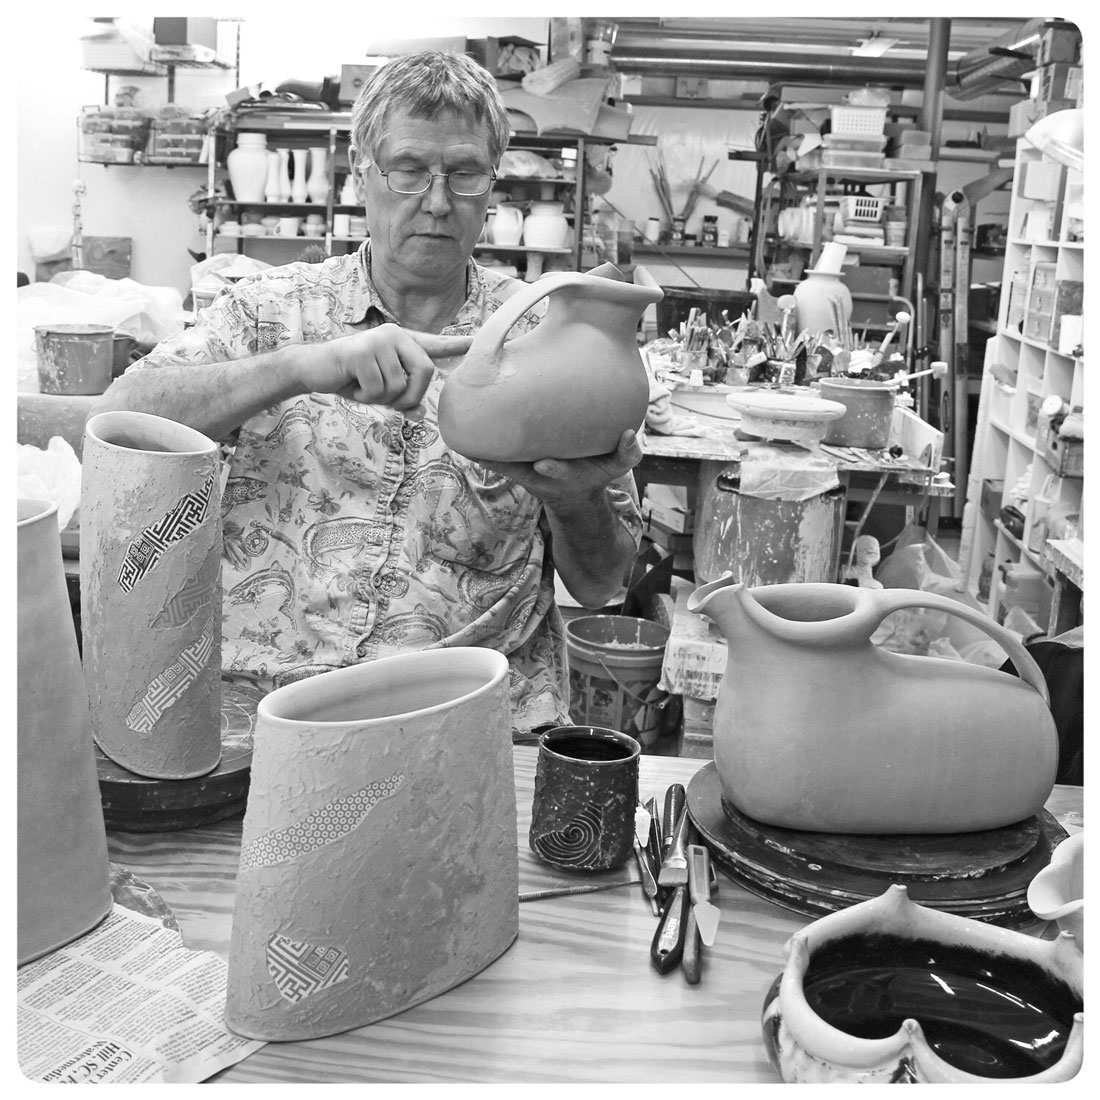 Bruce-Gholson-working-on-one-of-his-barrel-pitchers.jpg